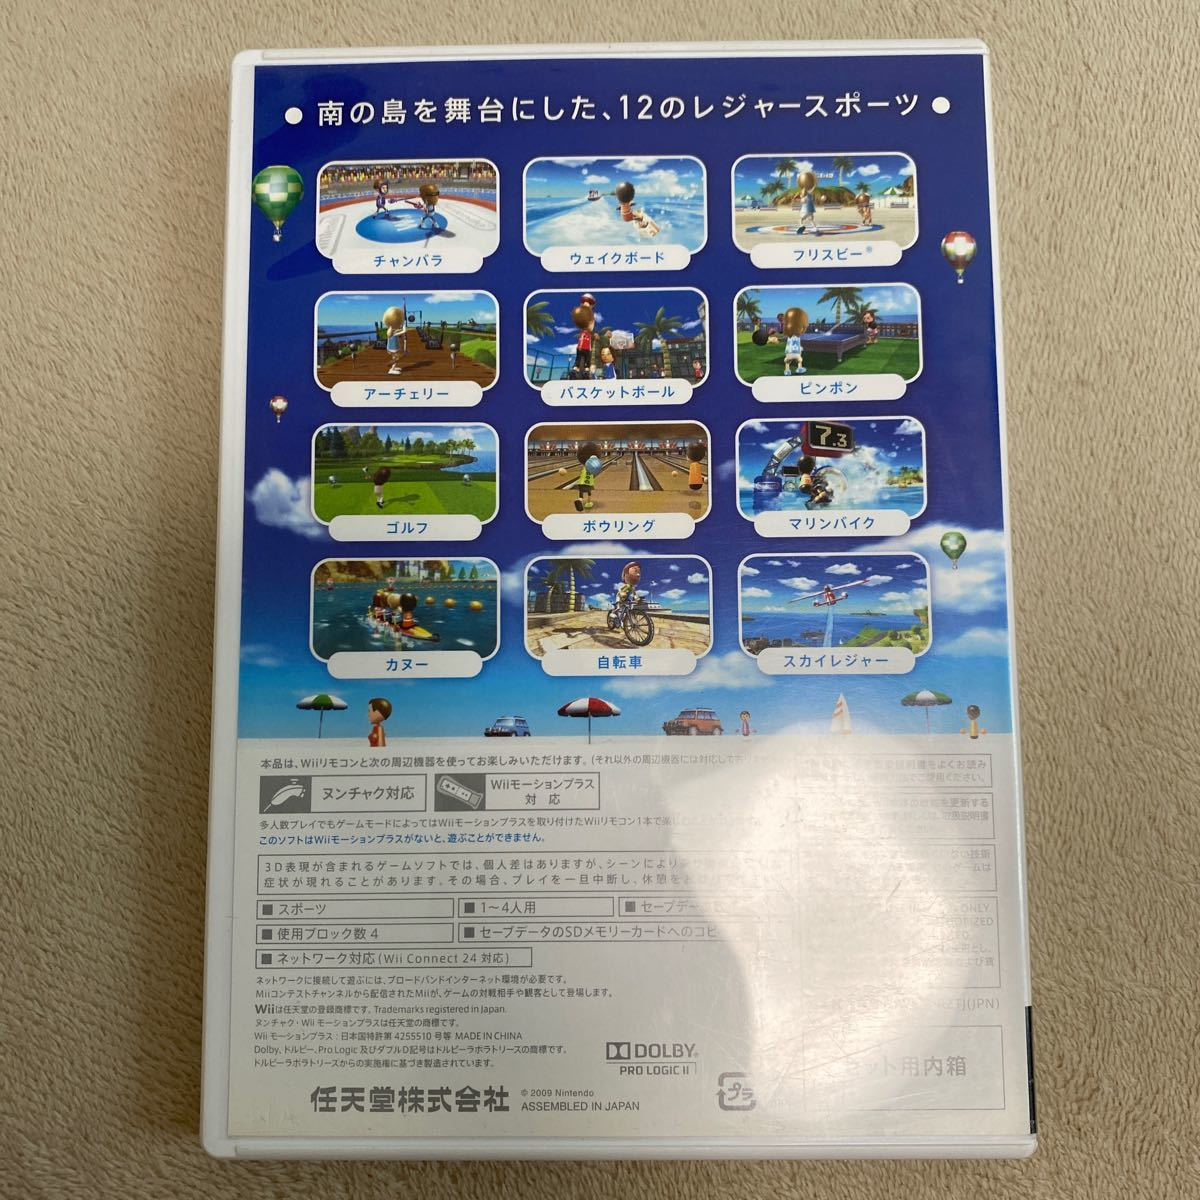 Wiiスポーツリゾート Wii Sports Resort 任天堂 Nintendo Wiiソフト